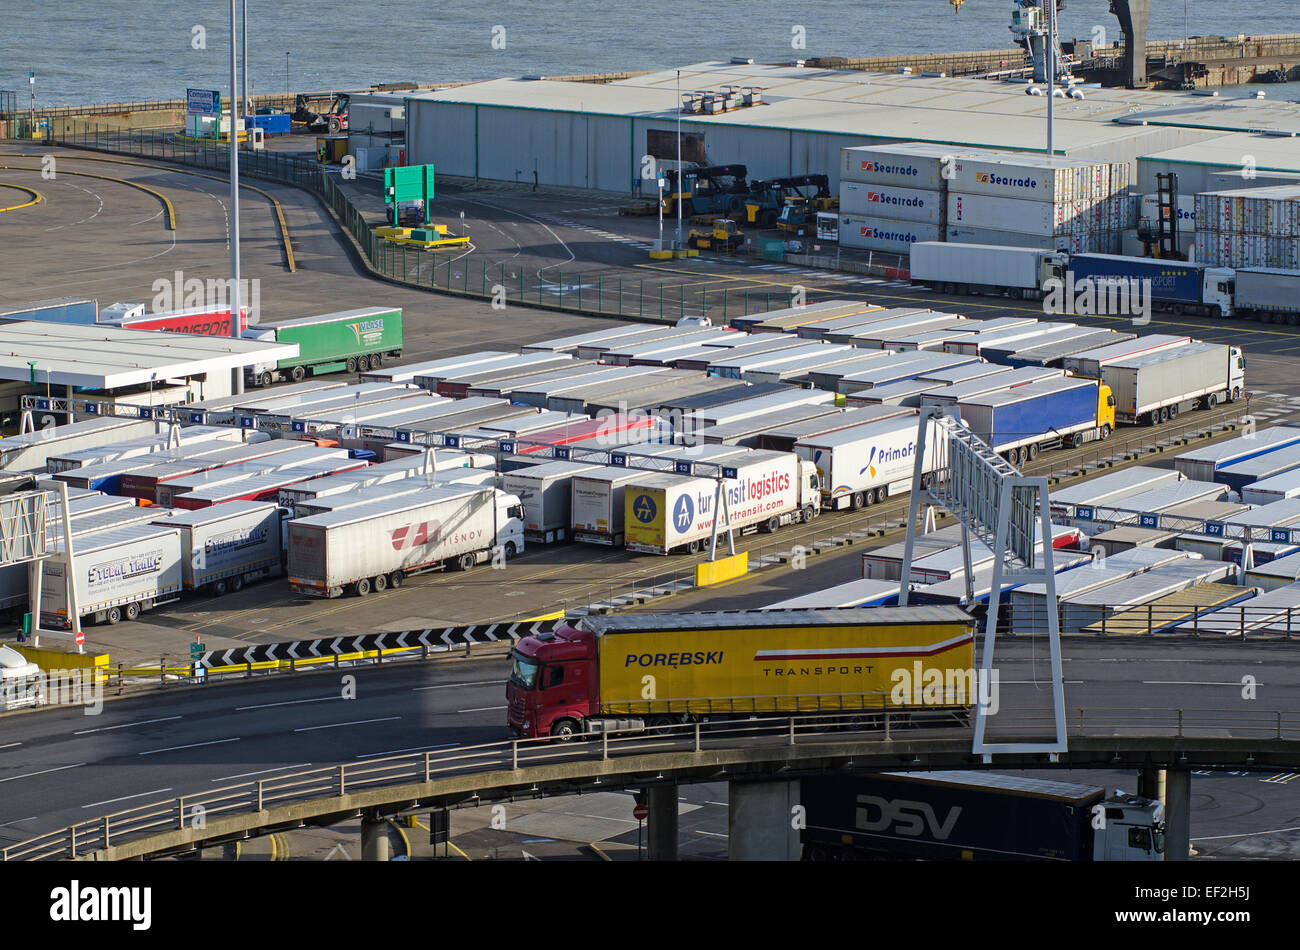 Lorries queuing before embarkation at Port of Dover, Kent, UK. - Stock Image